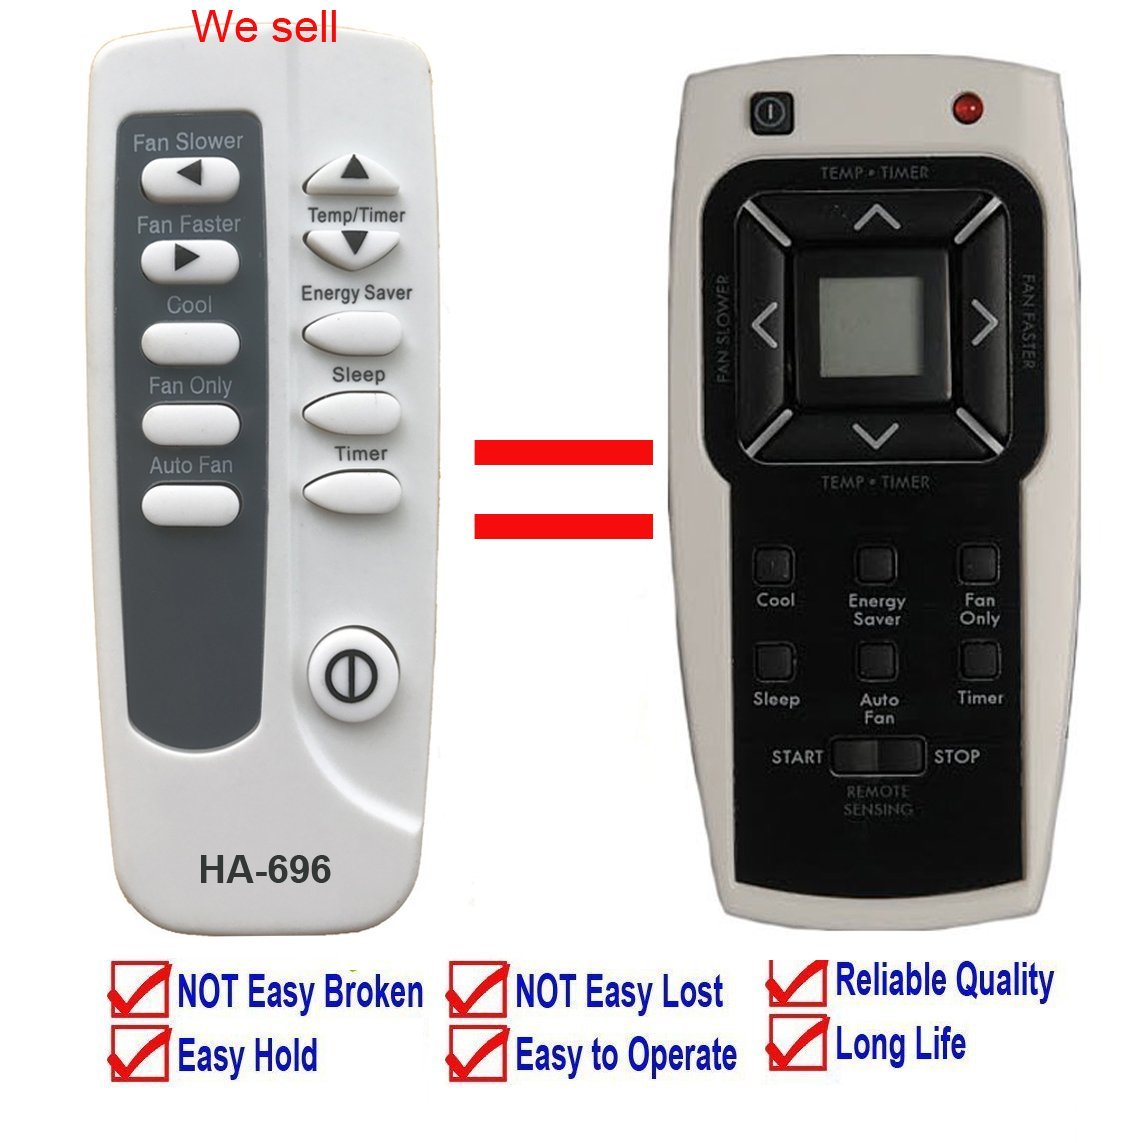 Replacement for Kenmore Air Conditioner Remote Control 5304495027 for Model 253.76085 253.76085314 253.76085410 253.76085411 253.76135 253.76135316 253.76135410 253.76135411 253.76180 253.76180312 ZHUHAI YINGRAY TRADING CO. LTD. 2018071119